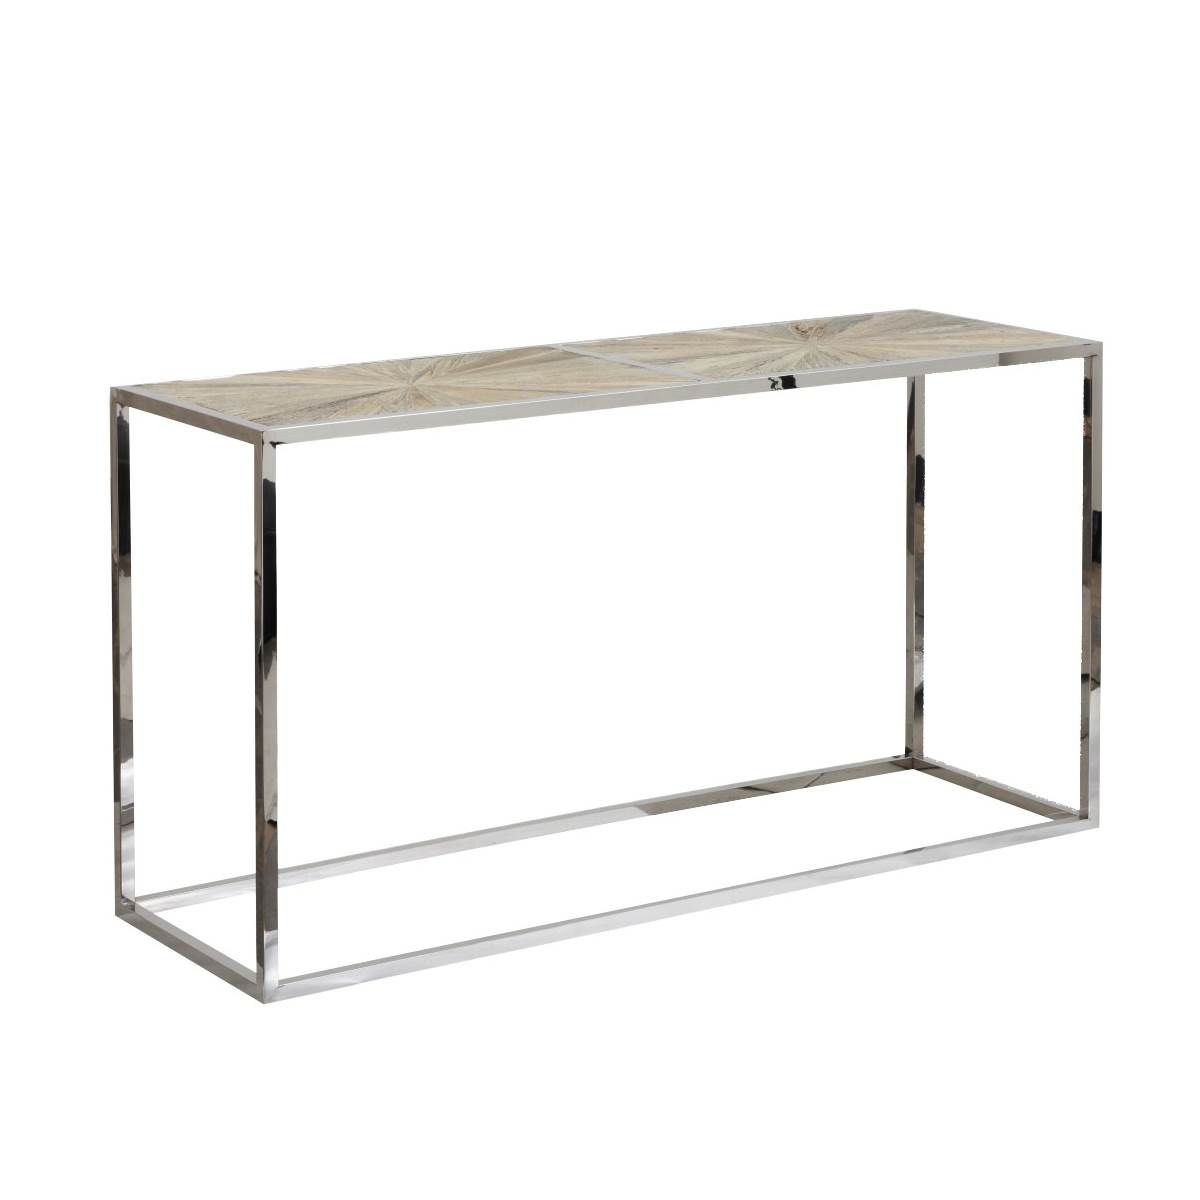 Parquet Console Table | Marshall | Pinterest intended for Parsons Grey Marble Top & Brass Base 48X16 Console Tables (Image 23 of 30)